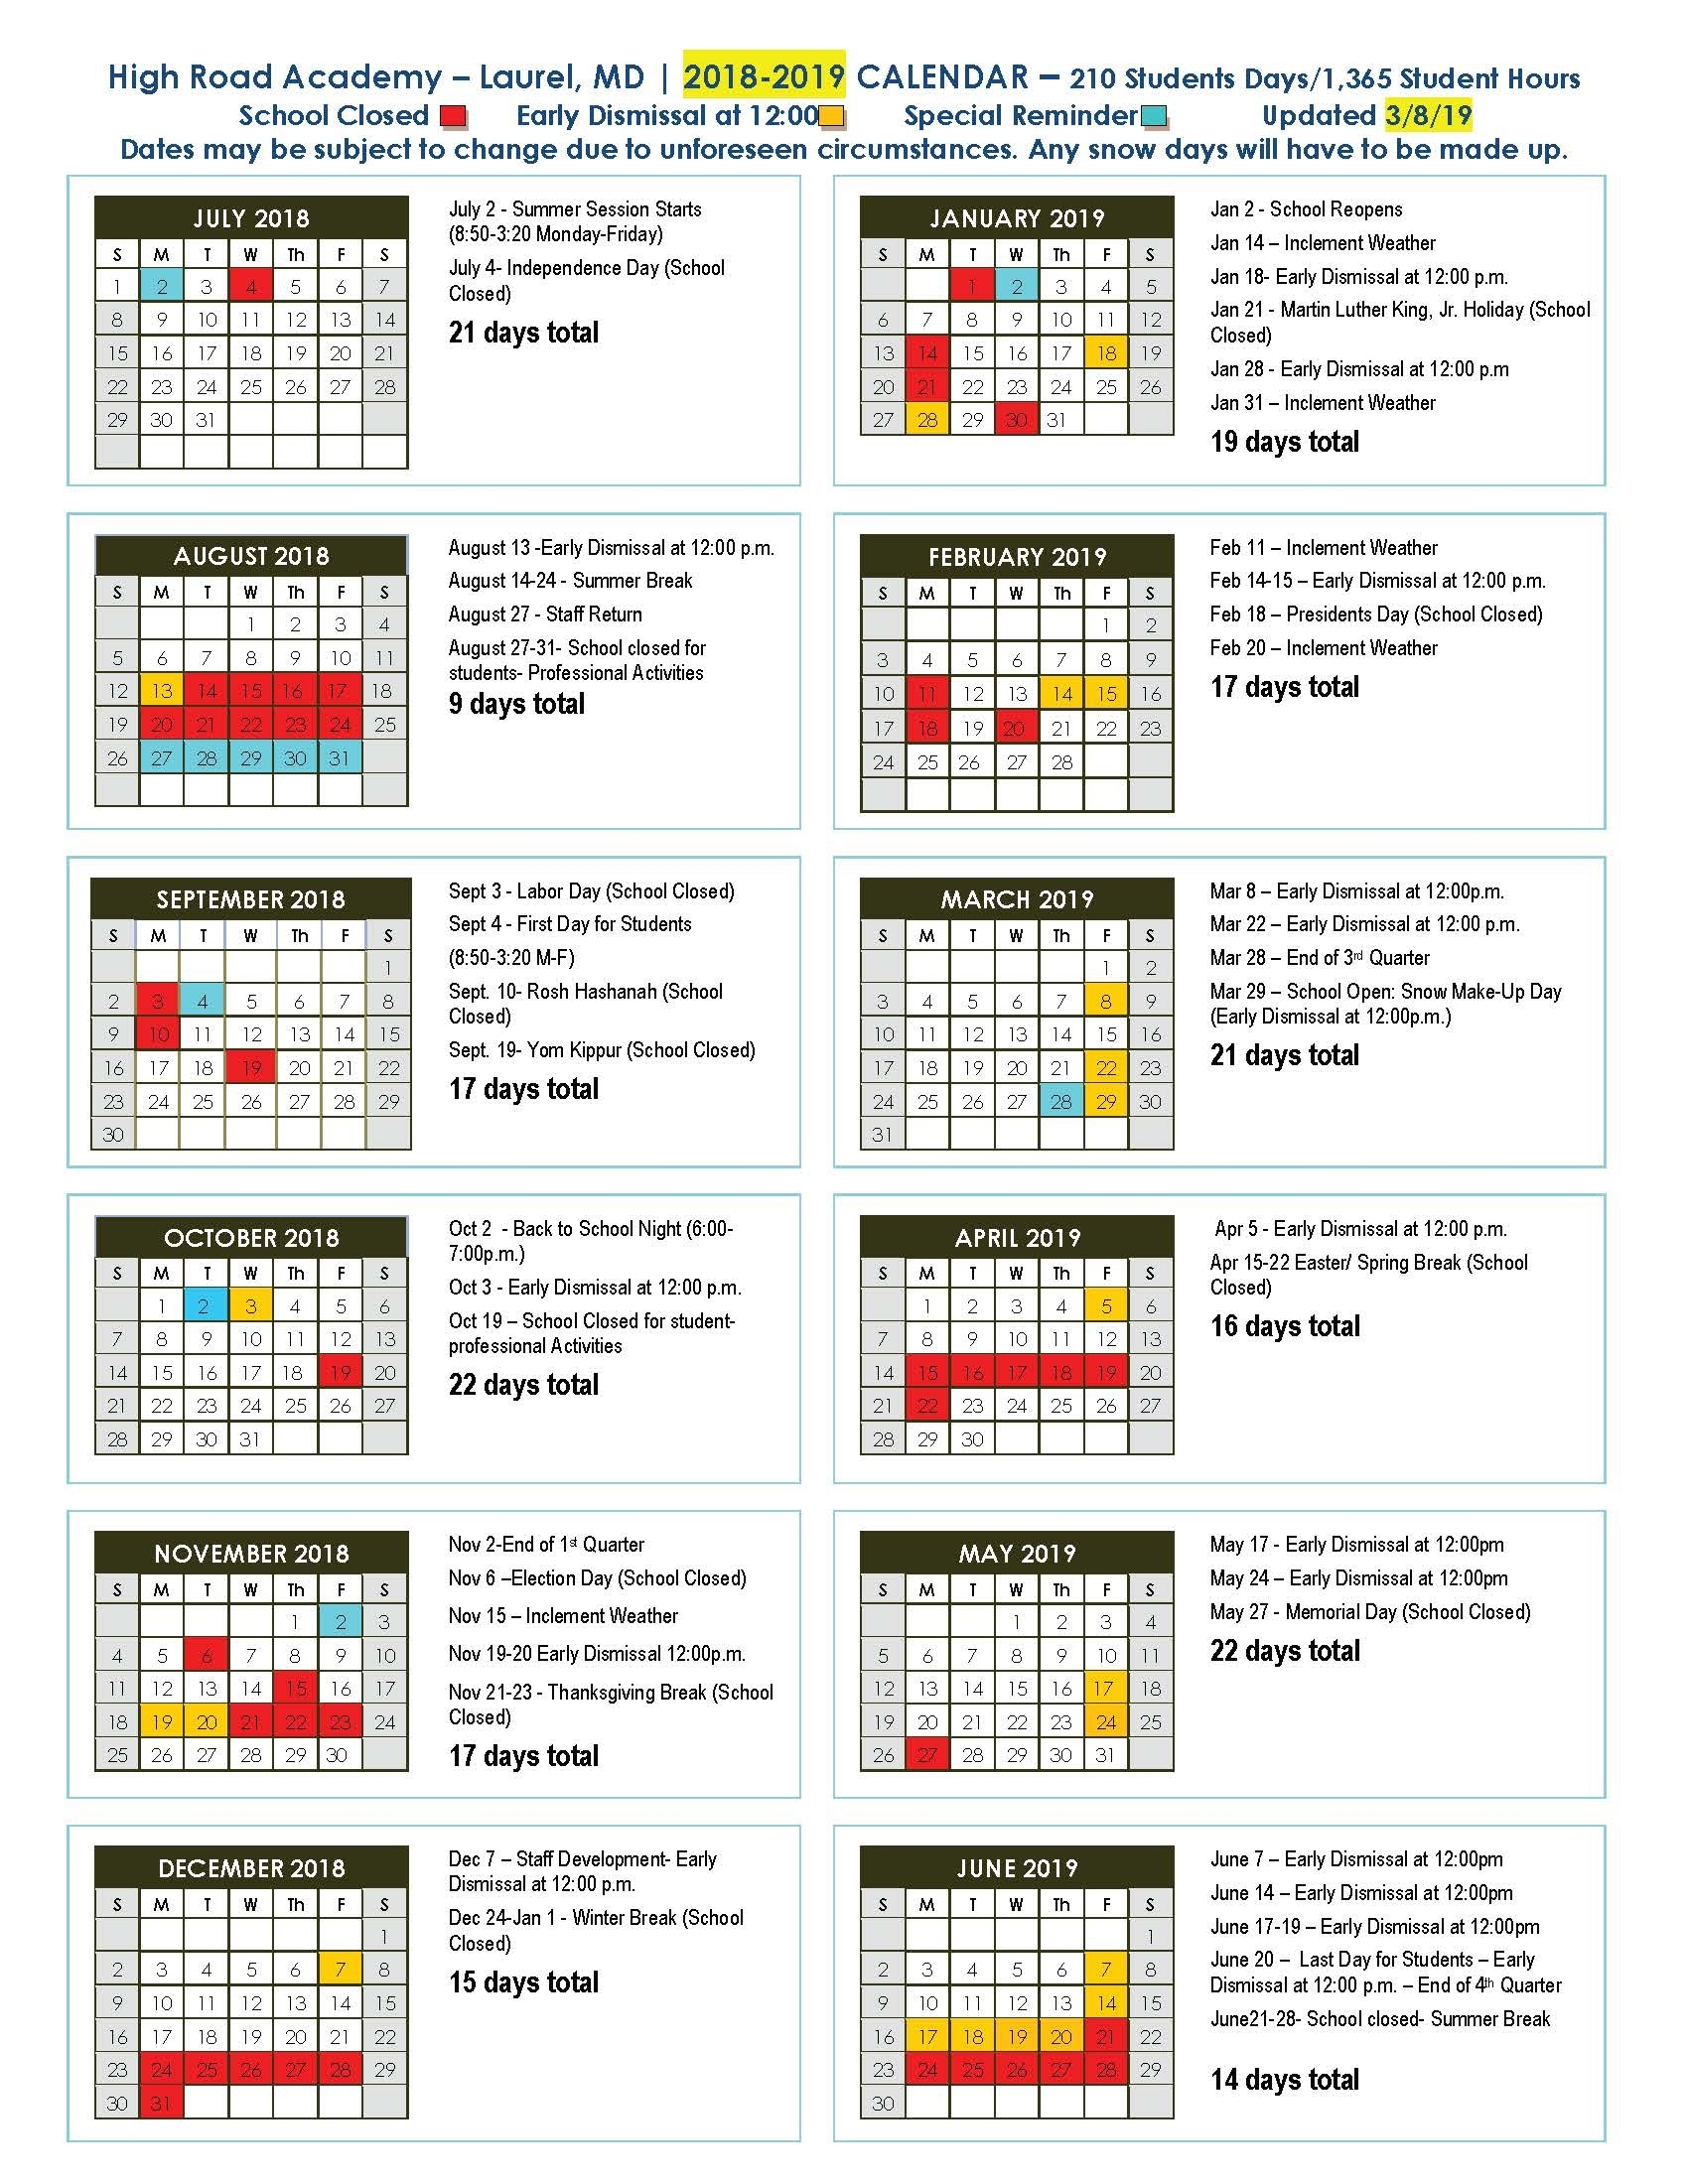 High Road Academy - Catapult Learning_School Calendar Rhode Island